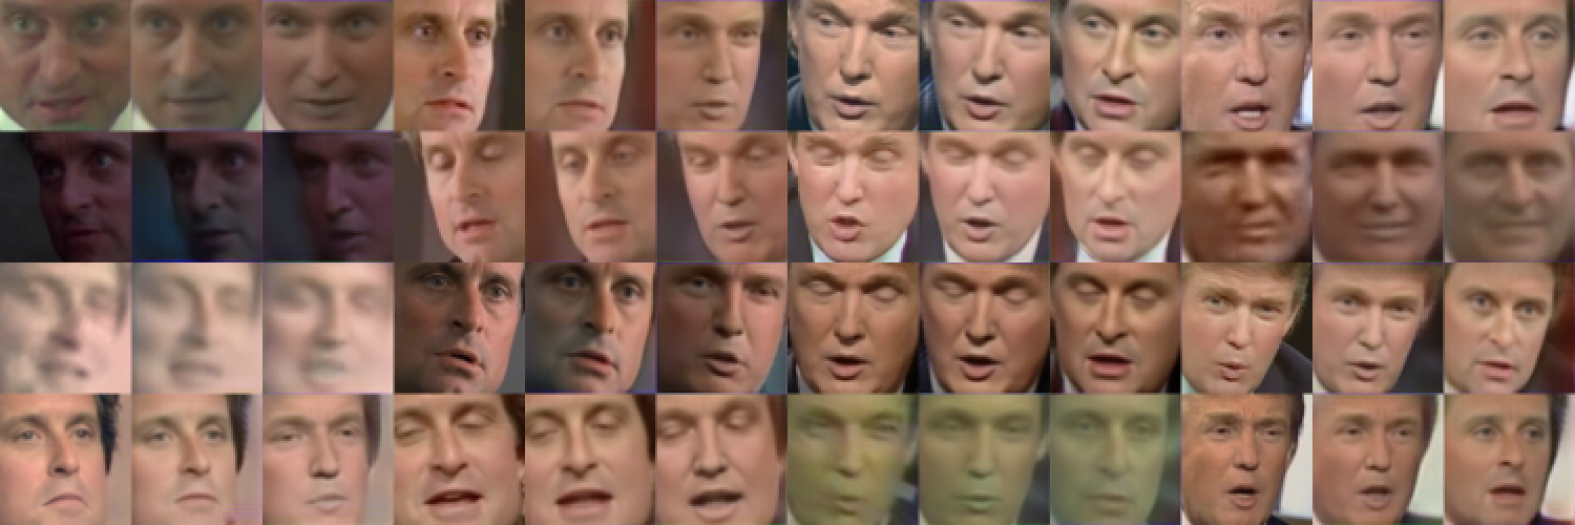 so_many_faces.png